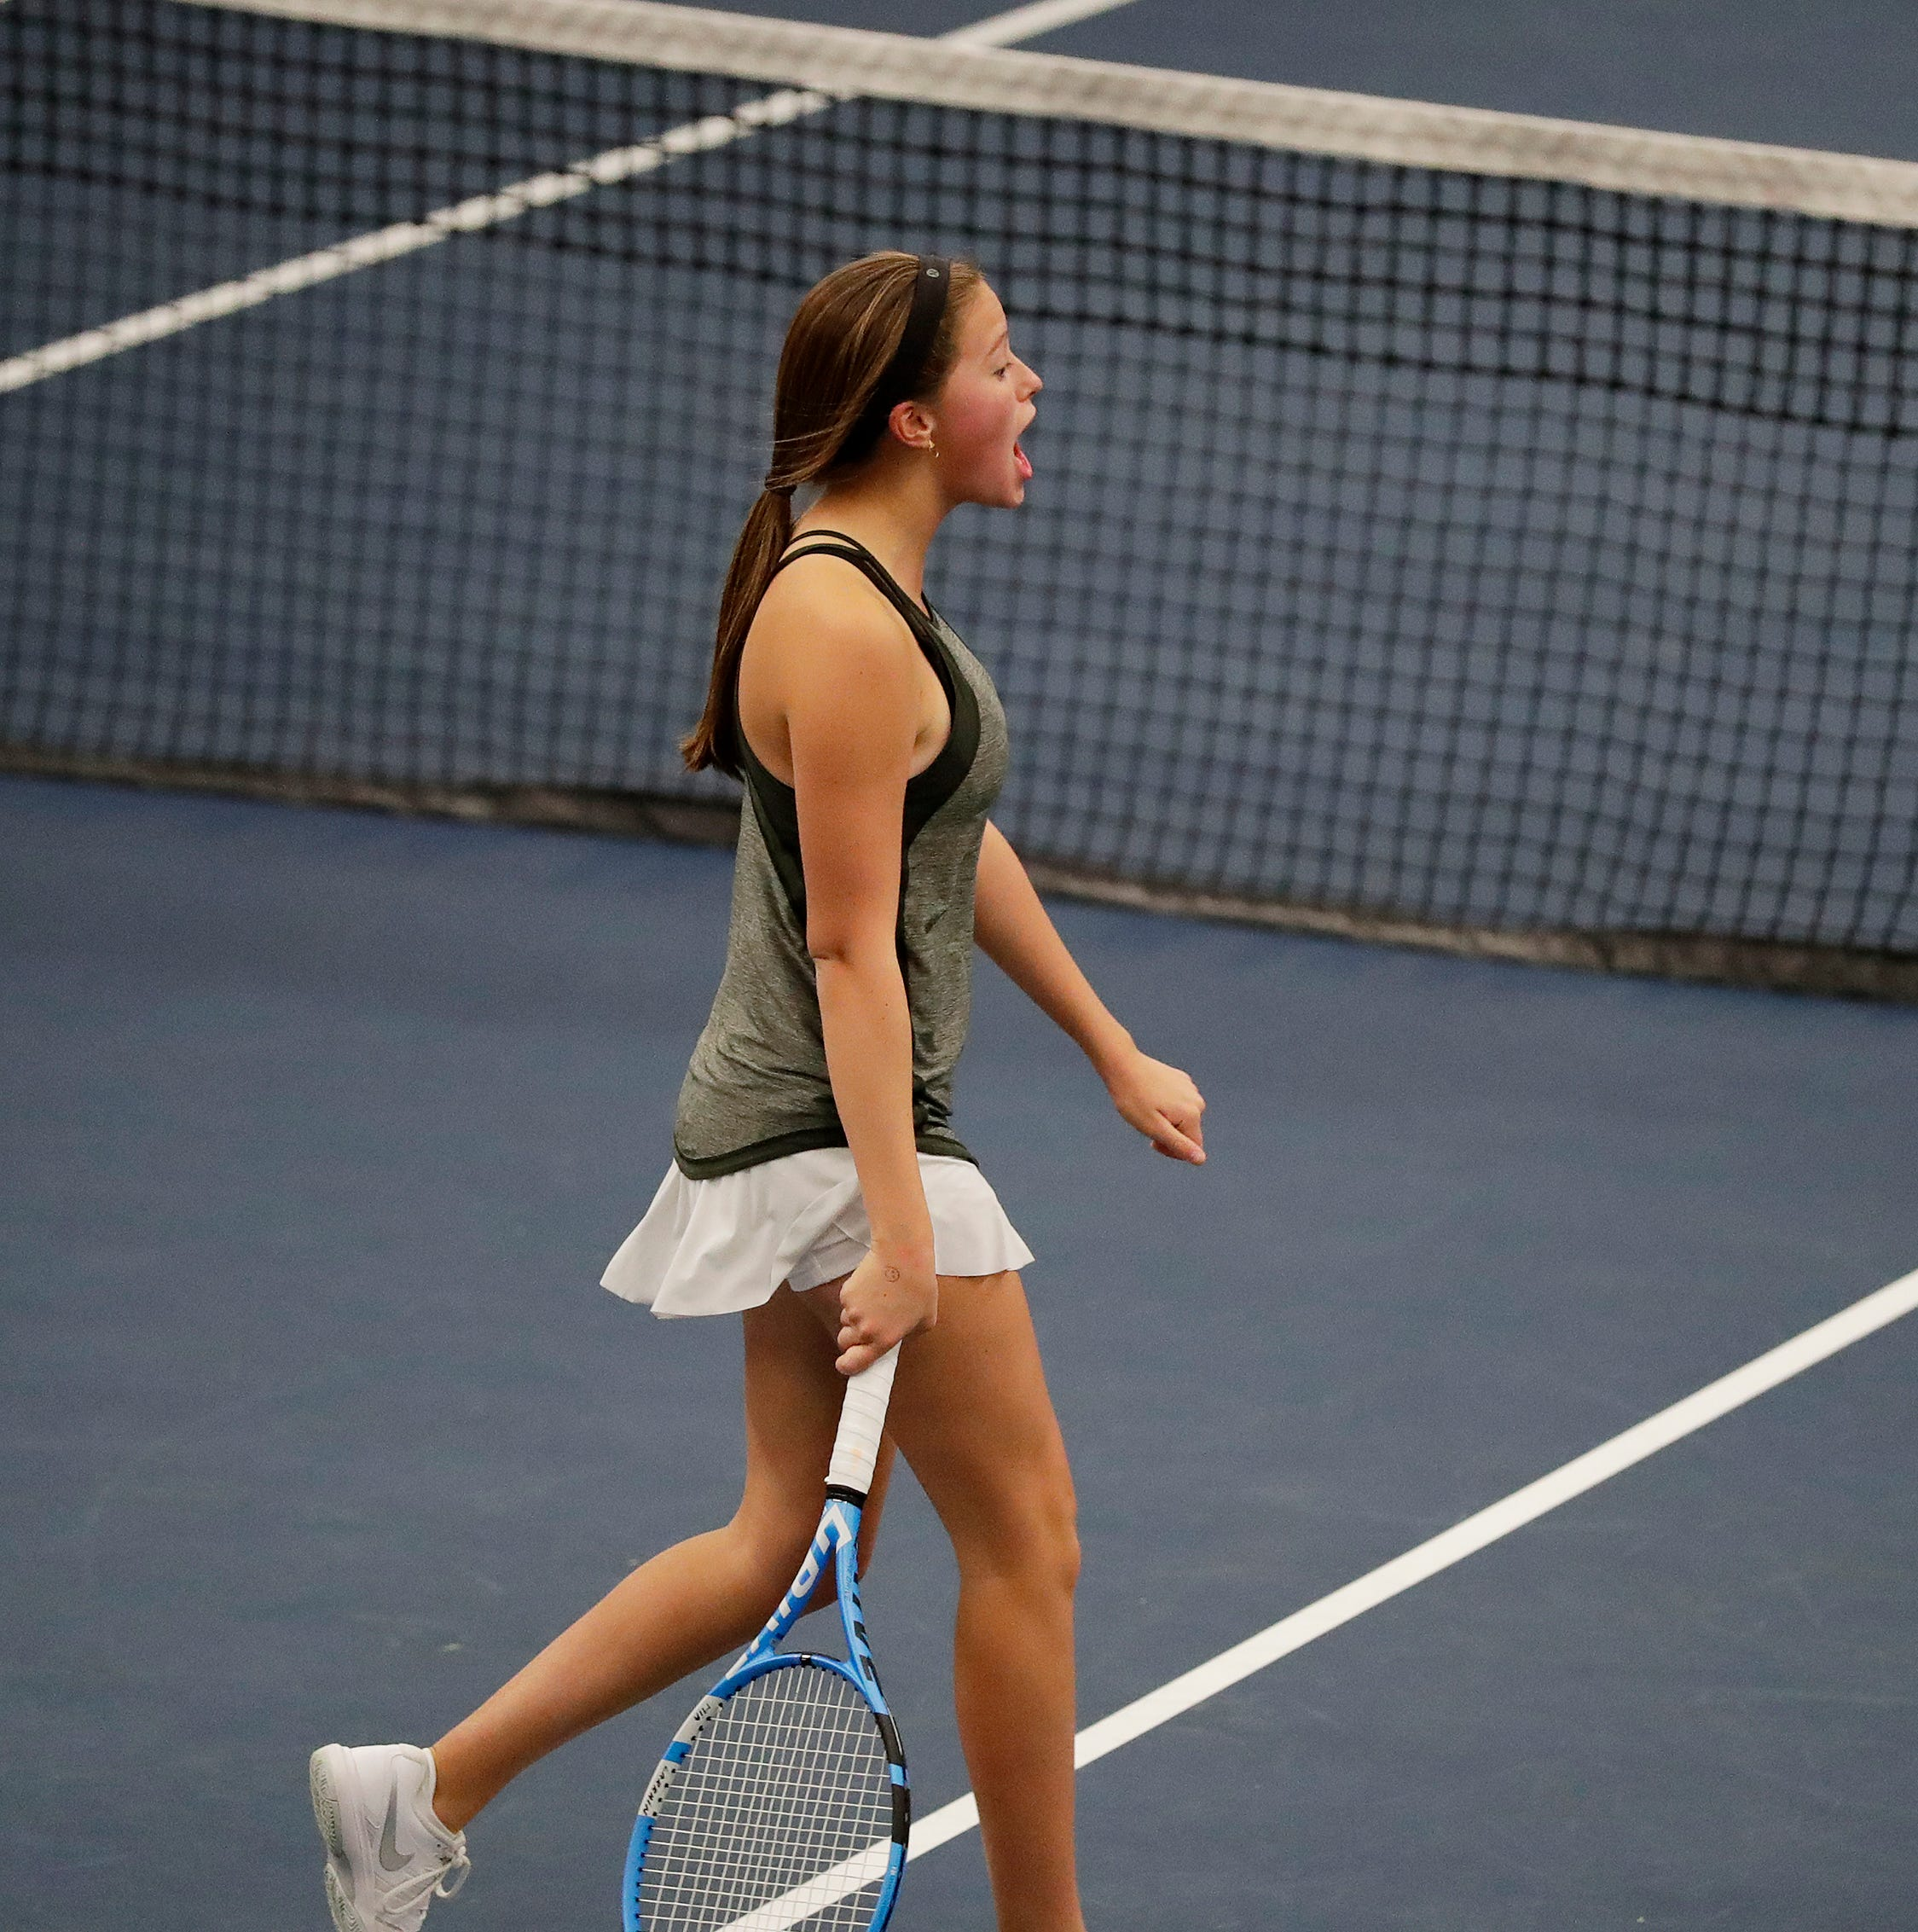 High school girls tennis: Newman's Mia Larrain brings home Division 2 state single title